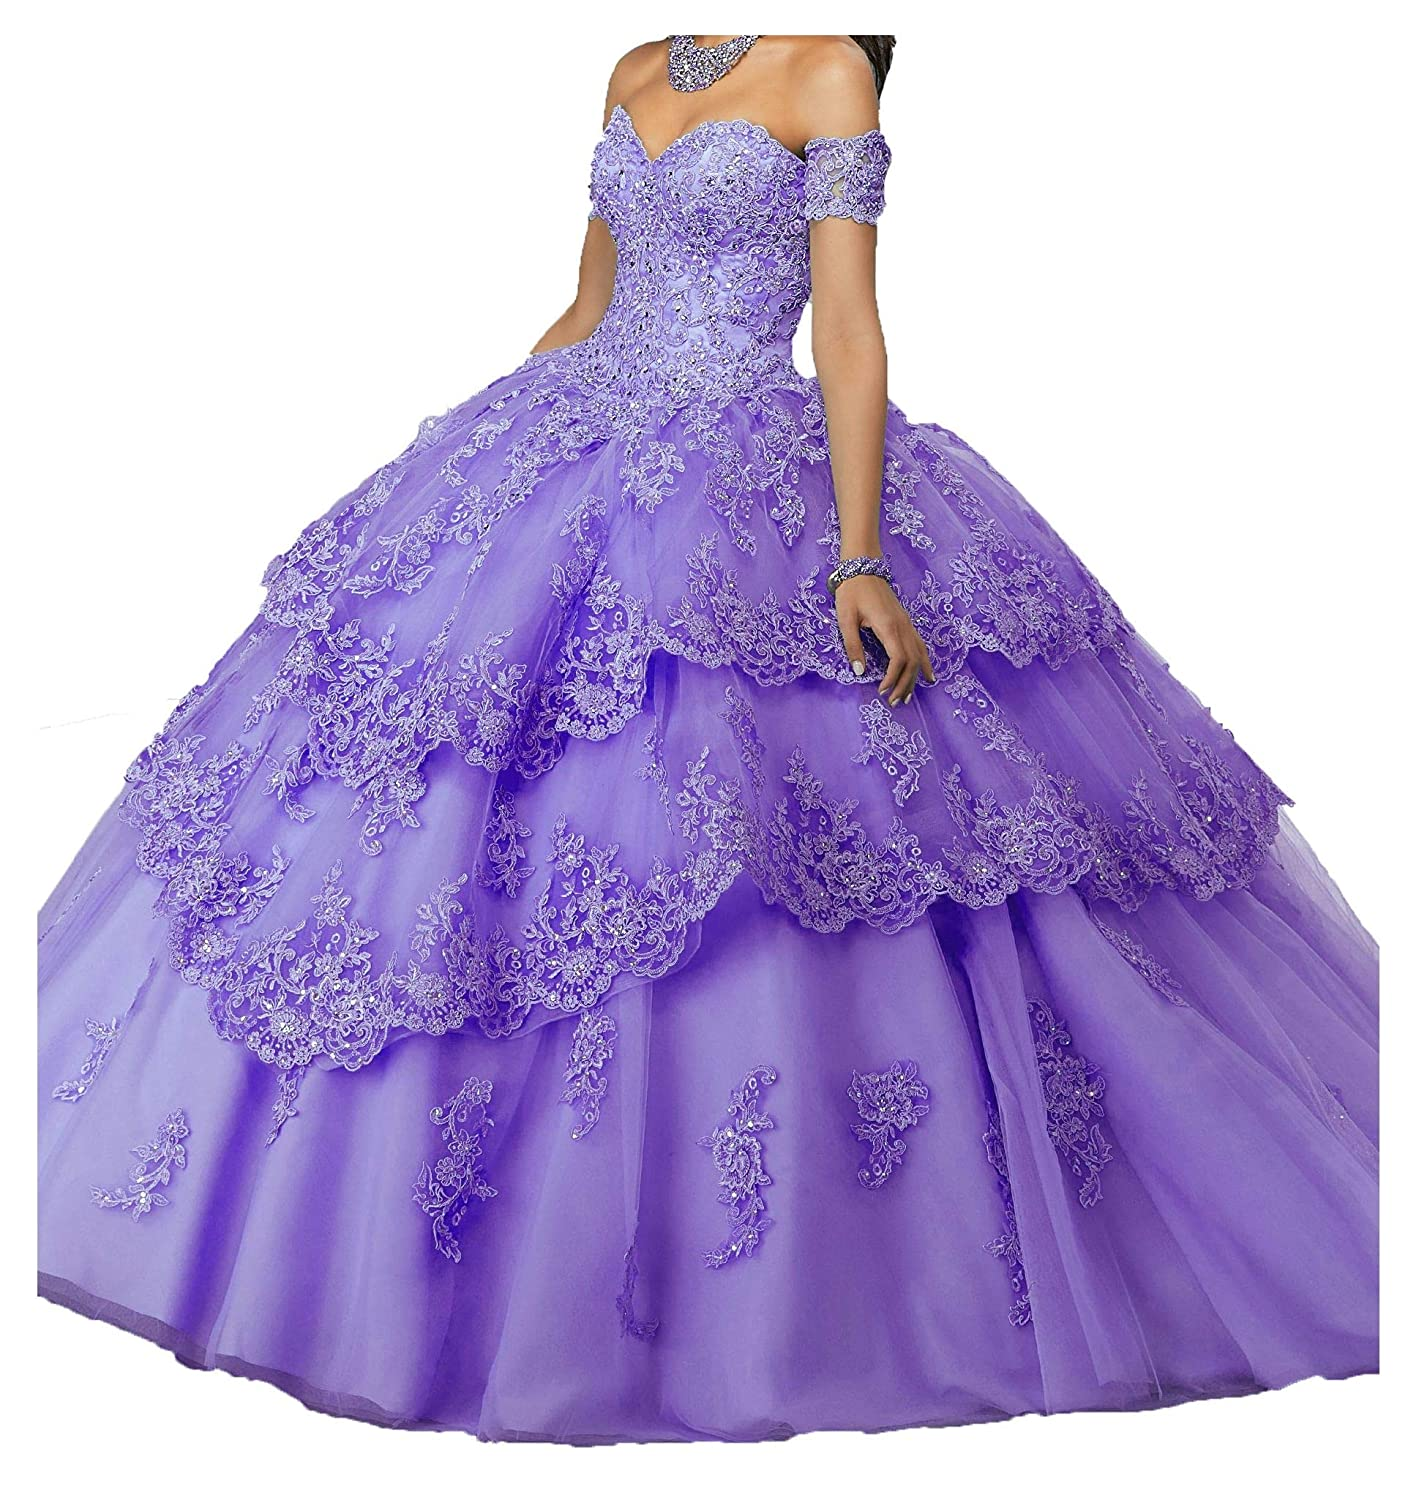 purplec a MFandy New Sweetheart Girls 16 Quinceanera Dress Appliques Beaded Ball Gowns